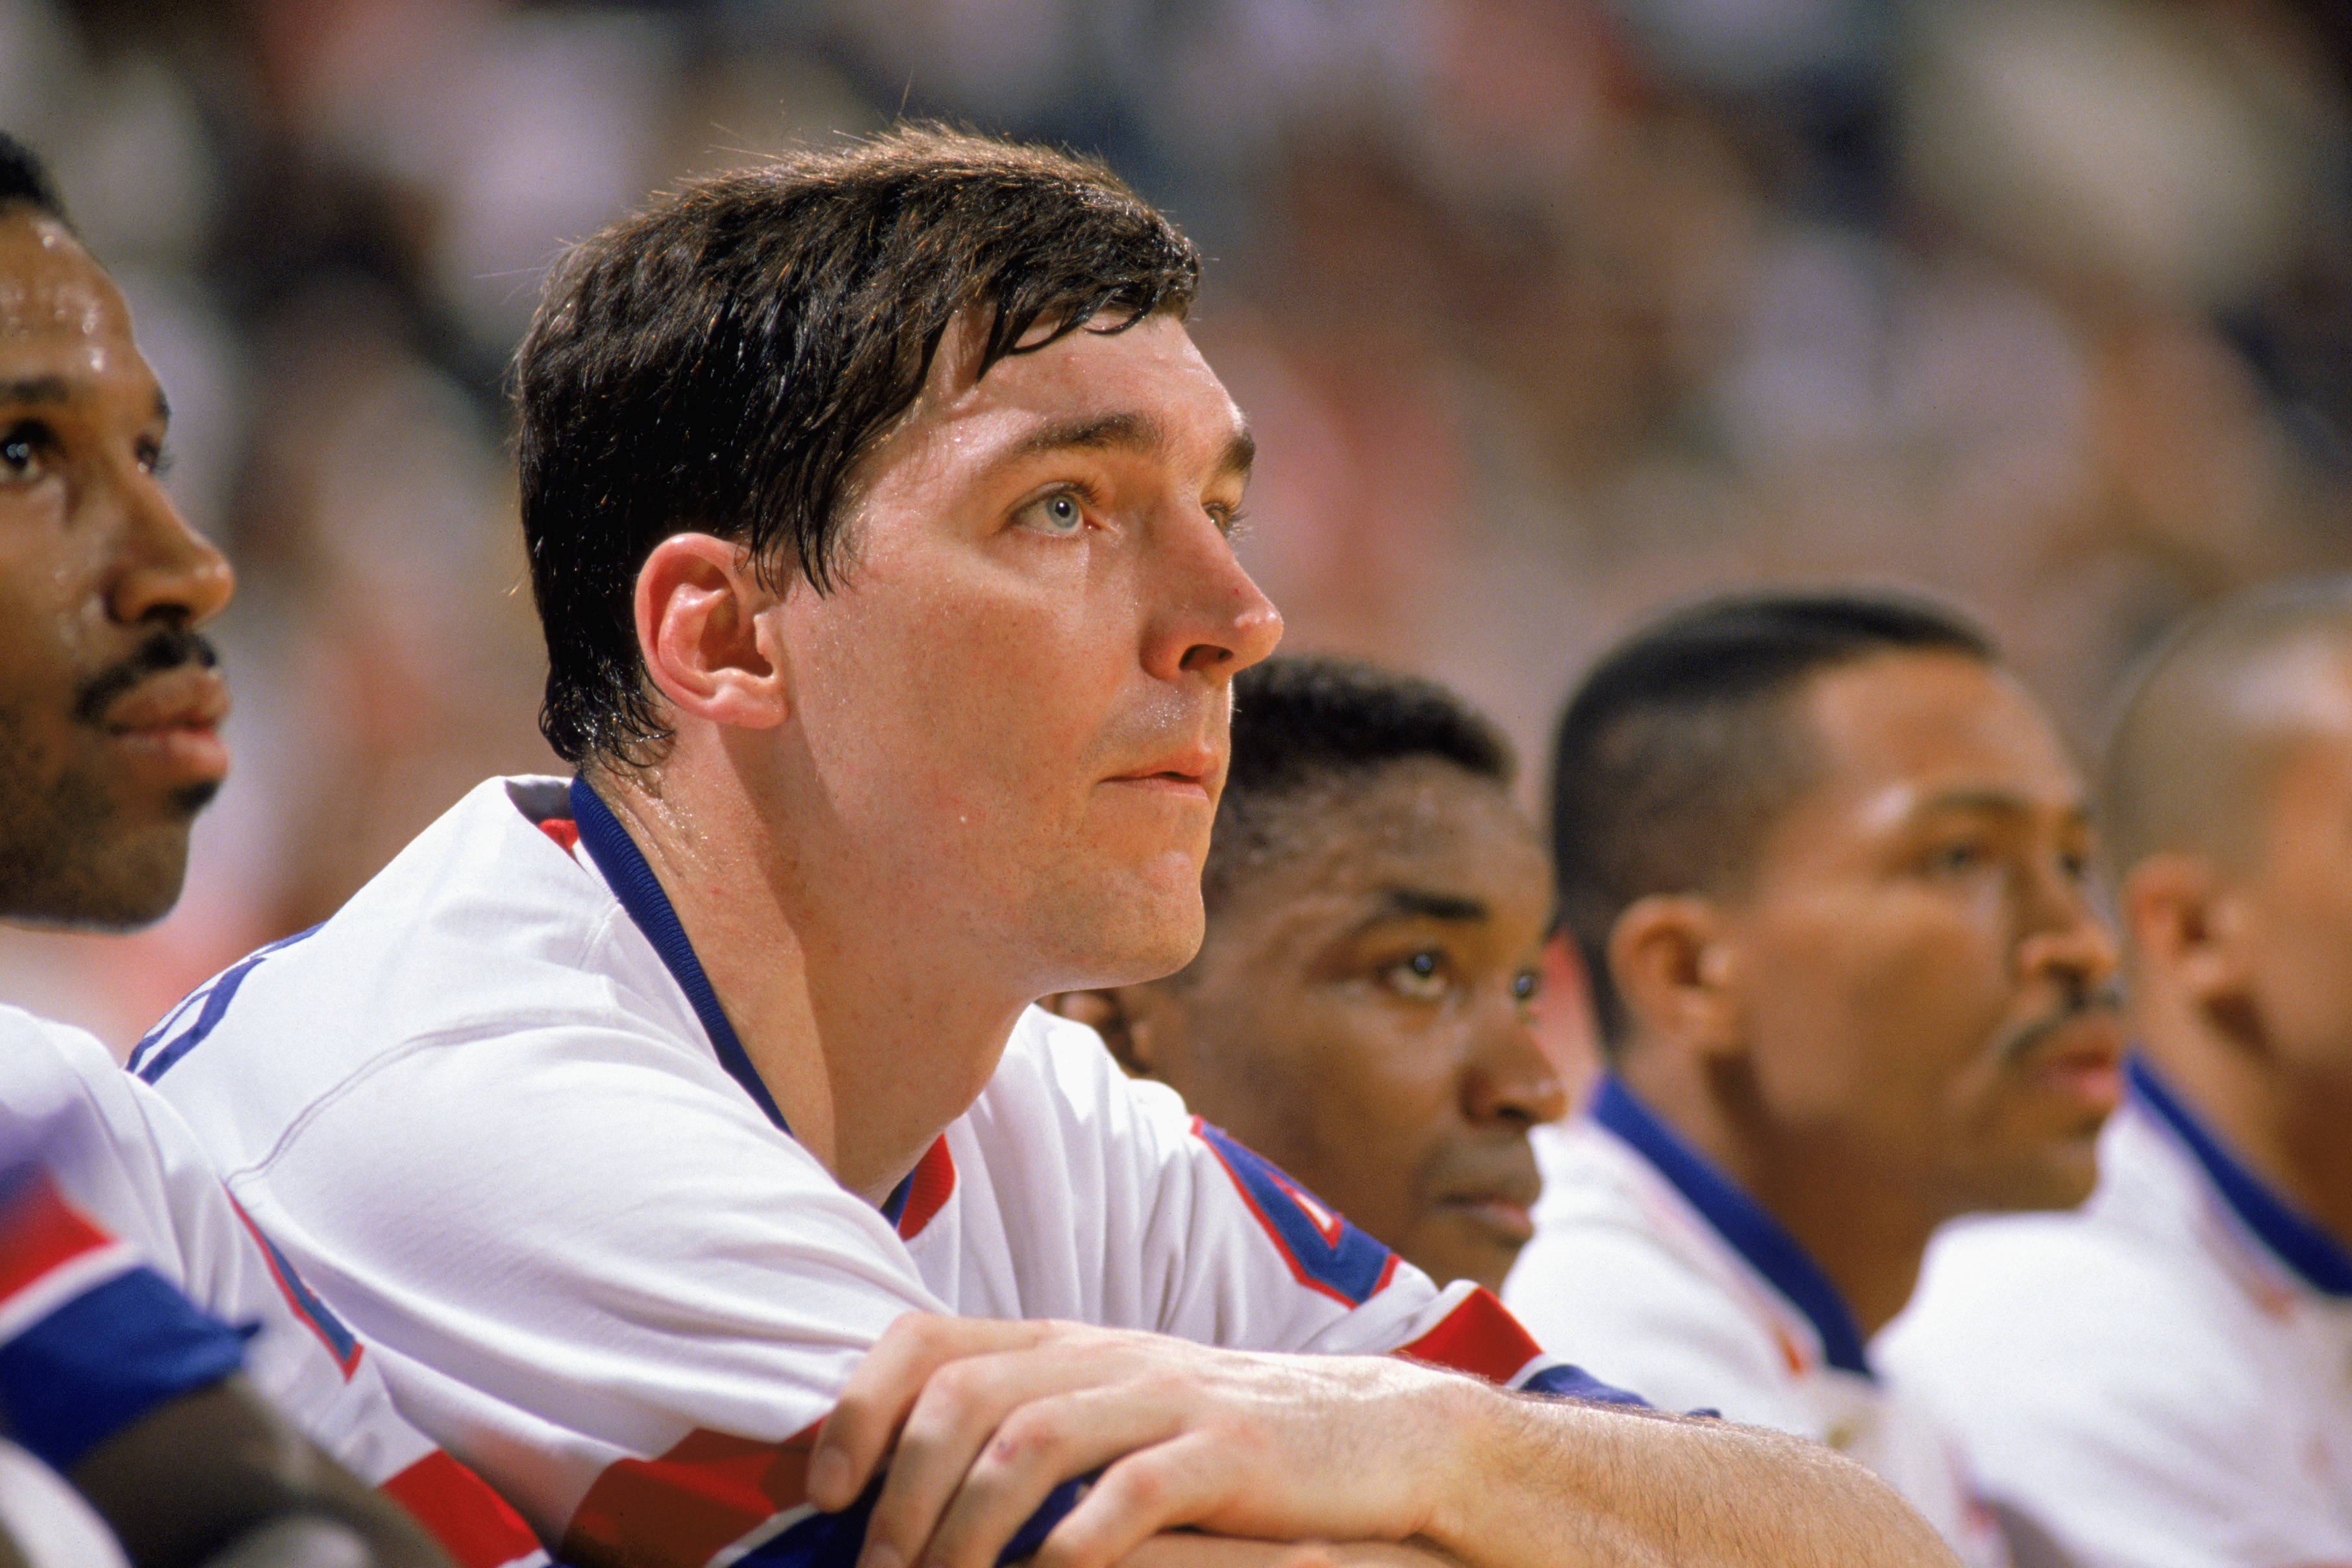 1989:  Bill Laimbeer #40 of the Detroit Pistons sits on the bench in a game during the 1988-1989 NBA season.  (Photo by Jonathan Daniel/Getty Images)